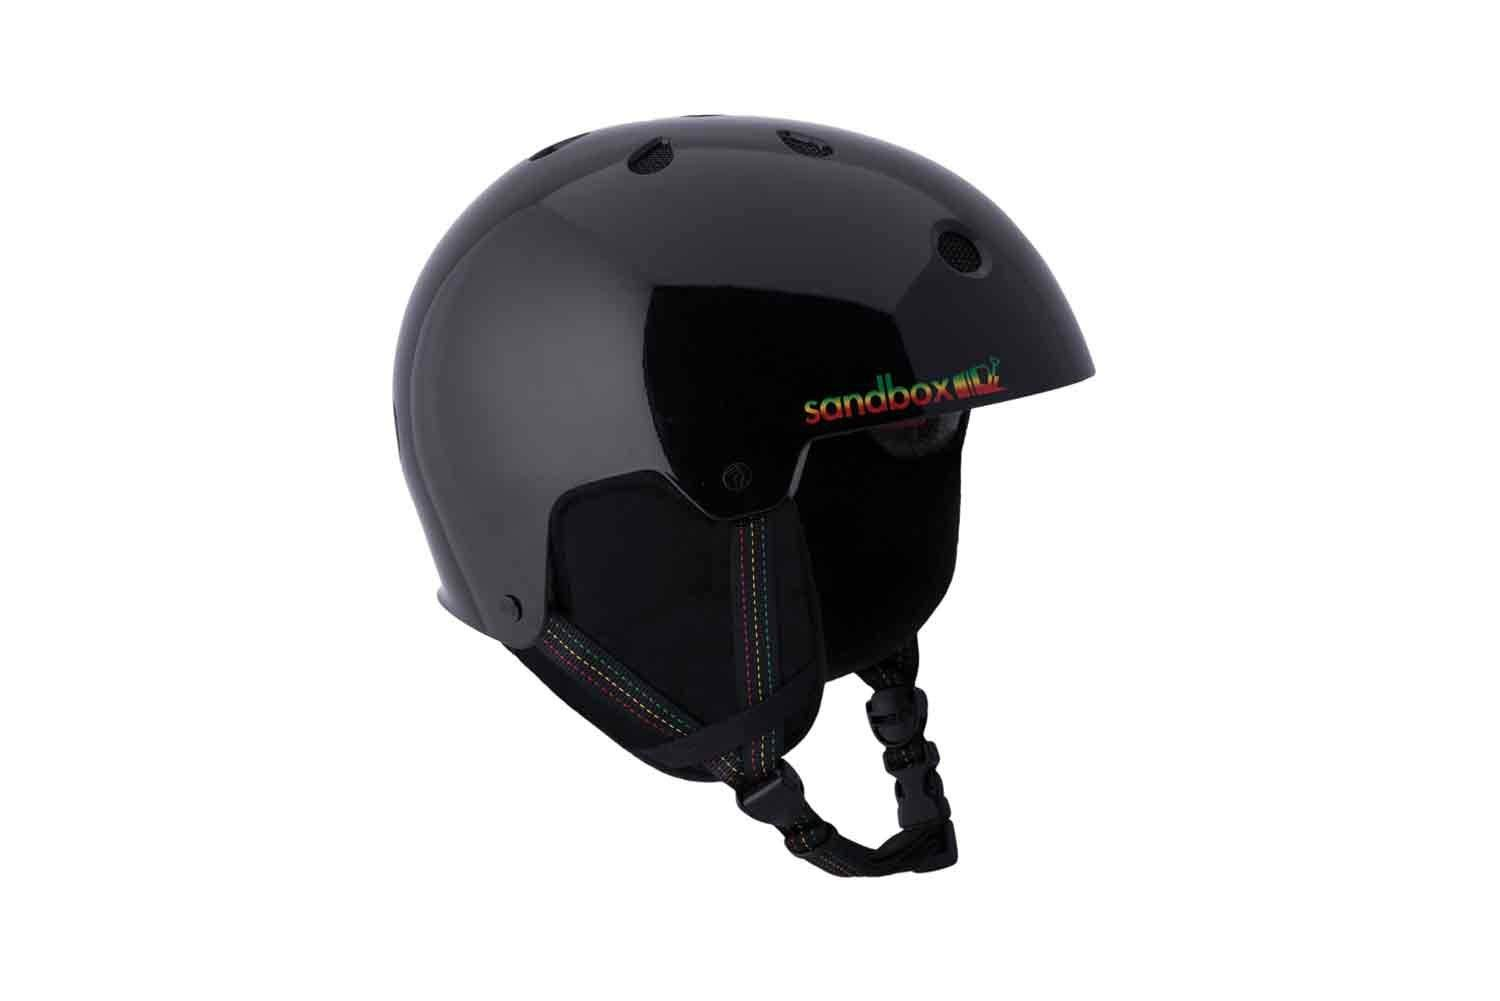 SANDBOX helmets Legend Snow Helmet with EPS Liner, Small, Black Rasta